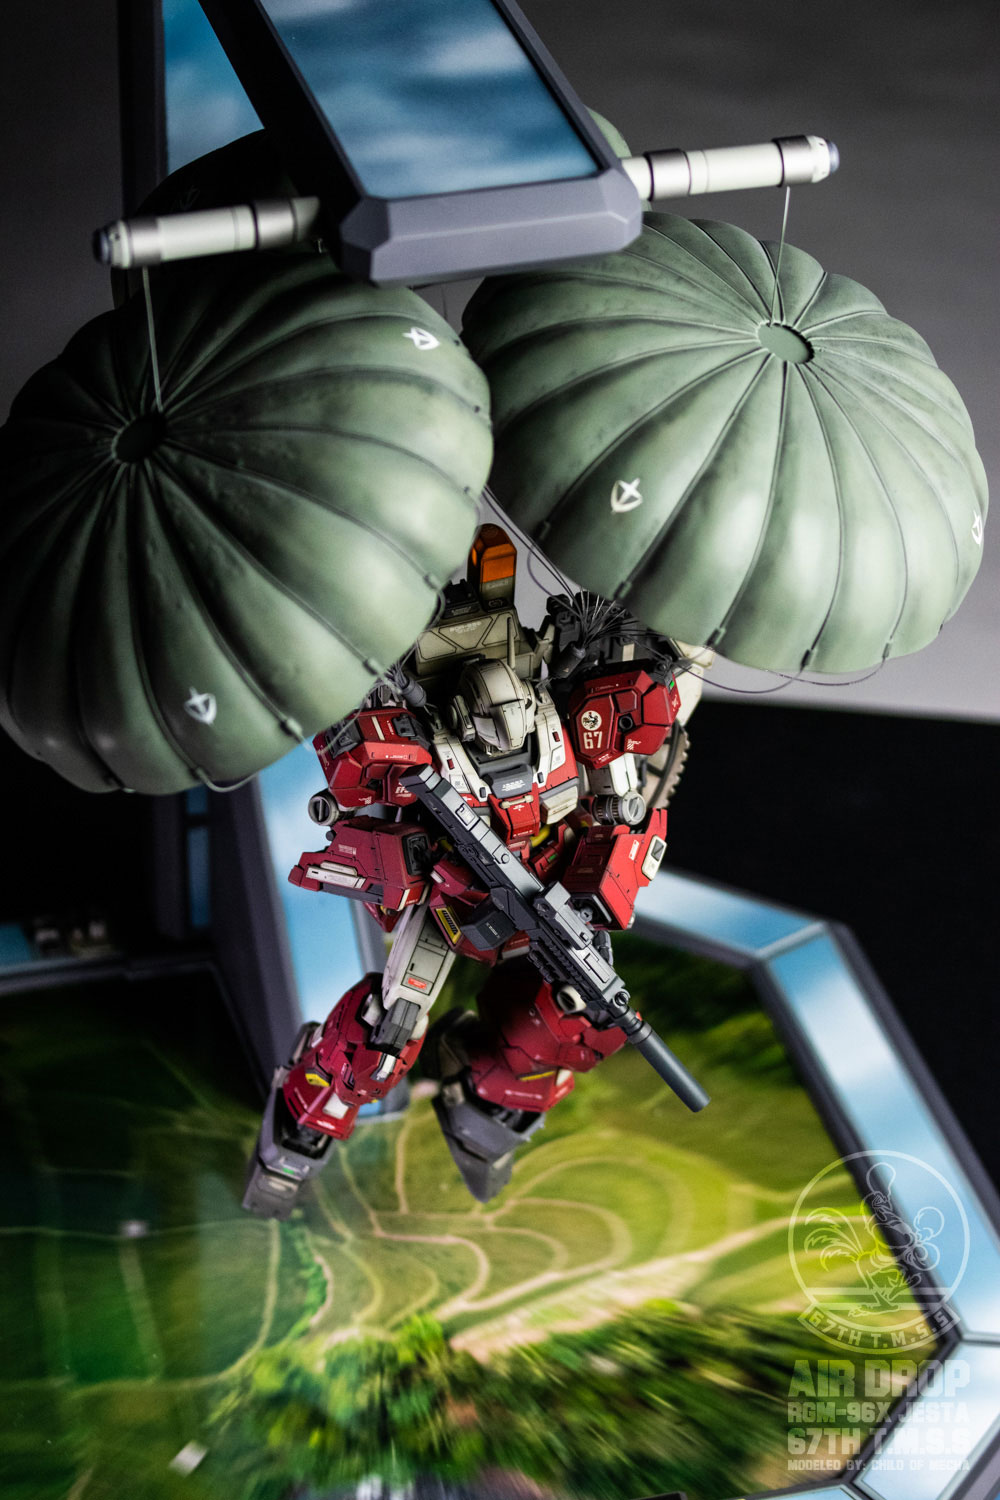 Air Drop - Jesta - 162.jpg